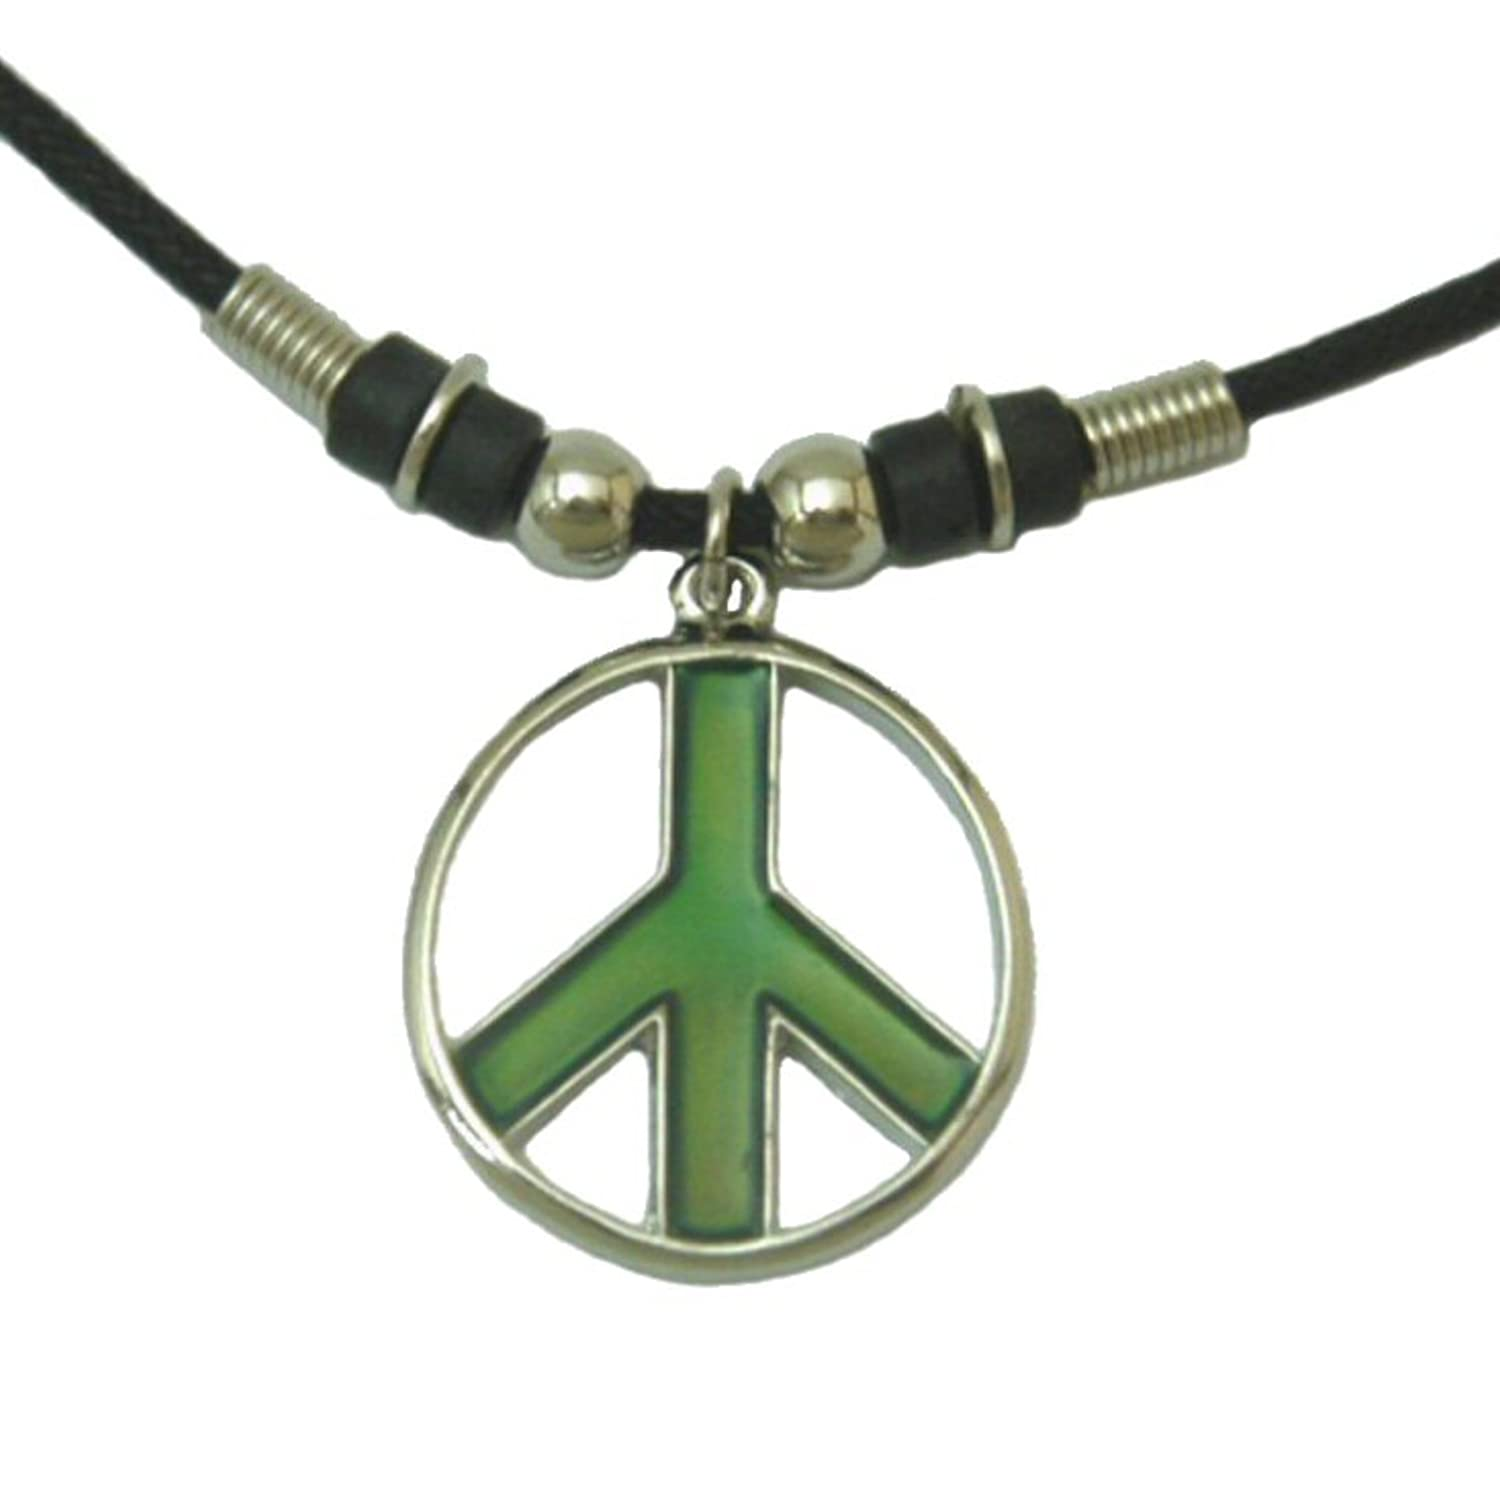 Amazon tapp collections trade mood pendant necklace peace amazon tapp collections trade mood pendant necklace peace sign jewelry aloadofball Gallery